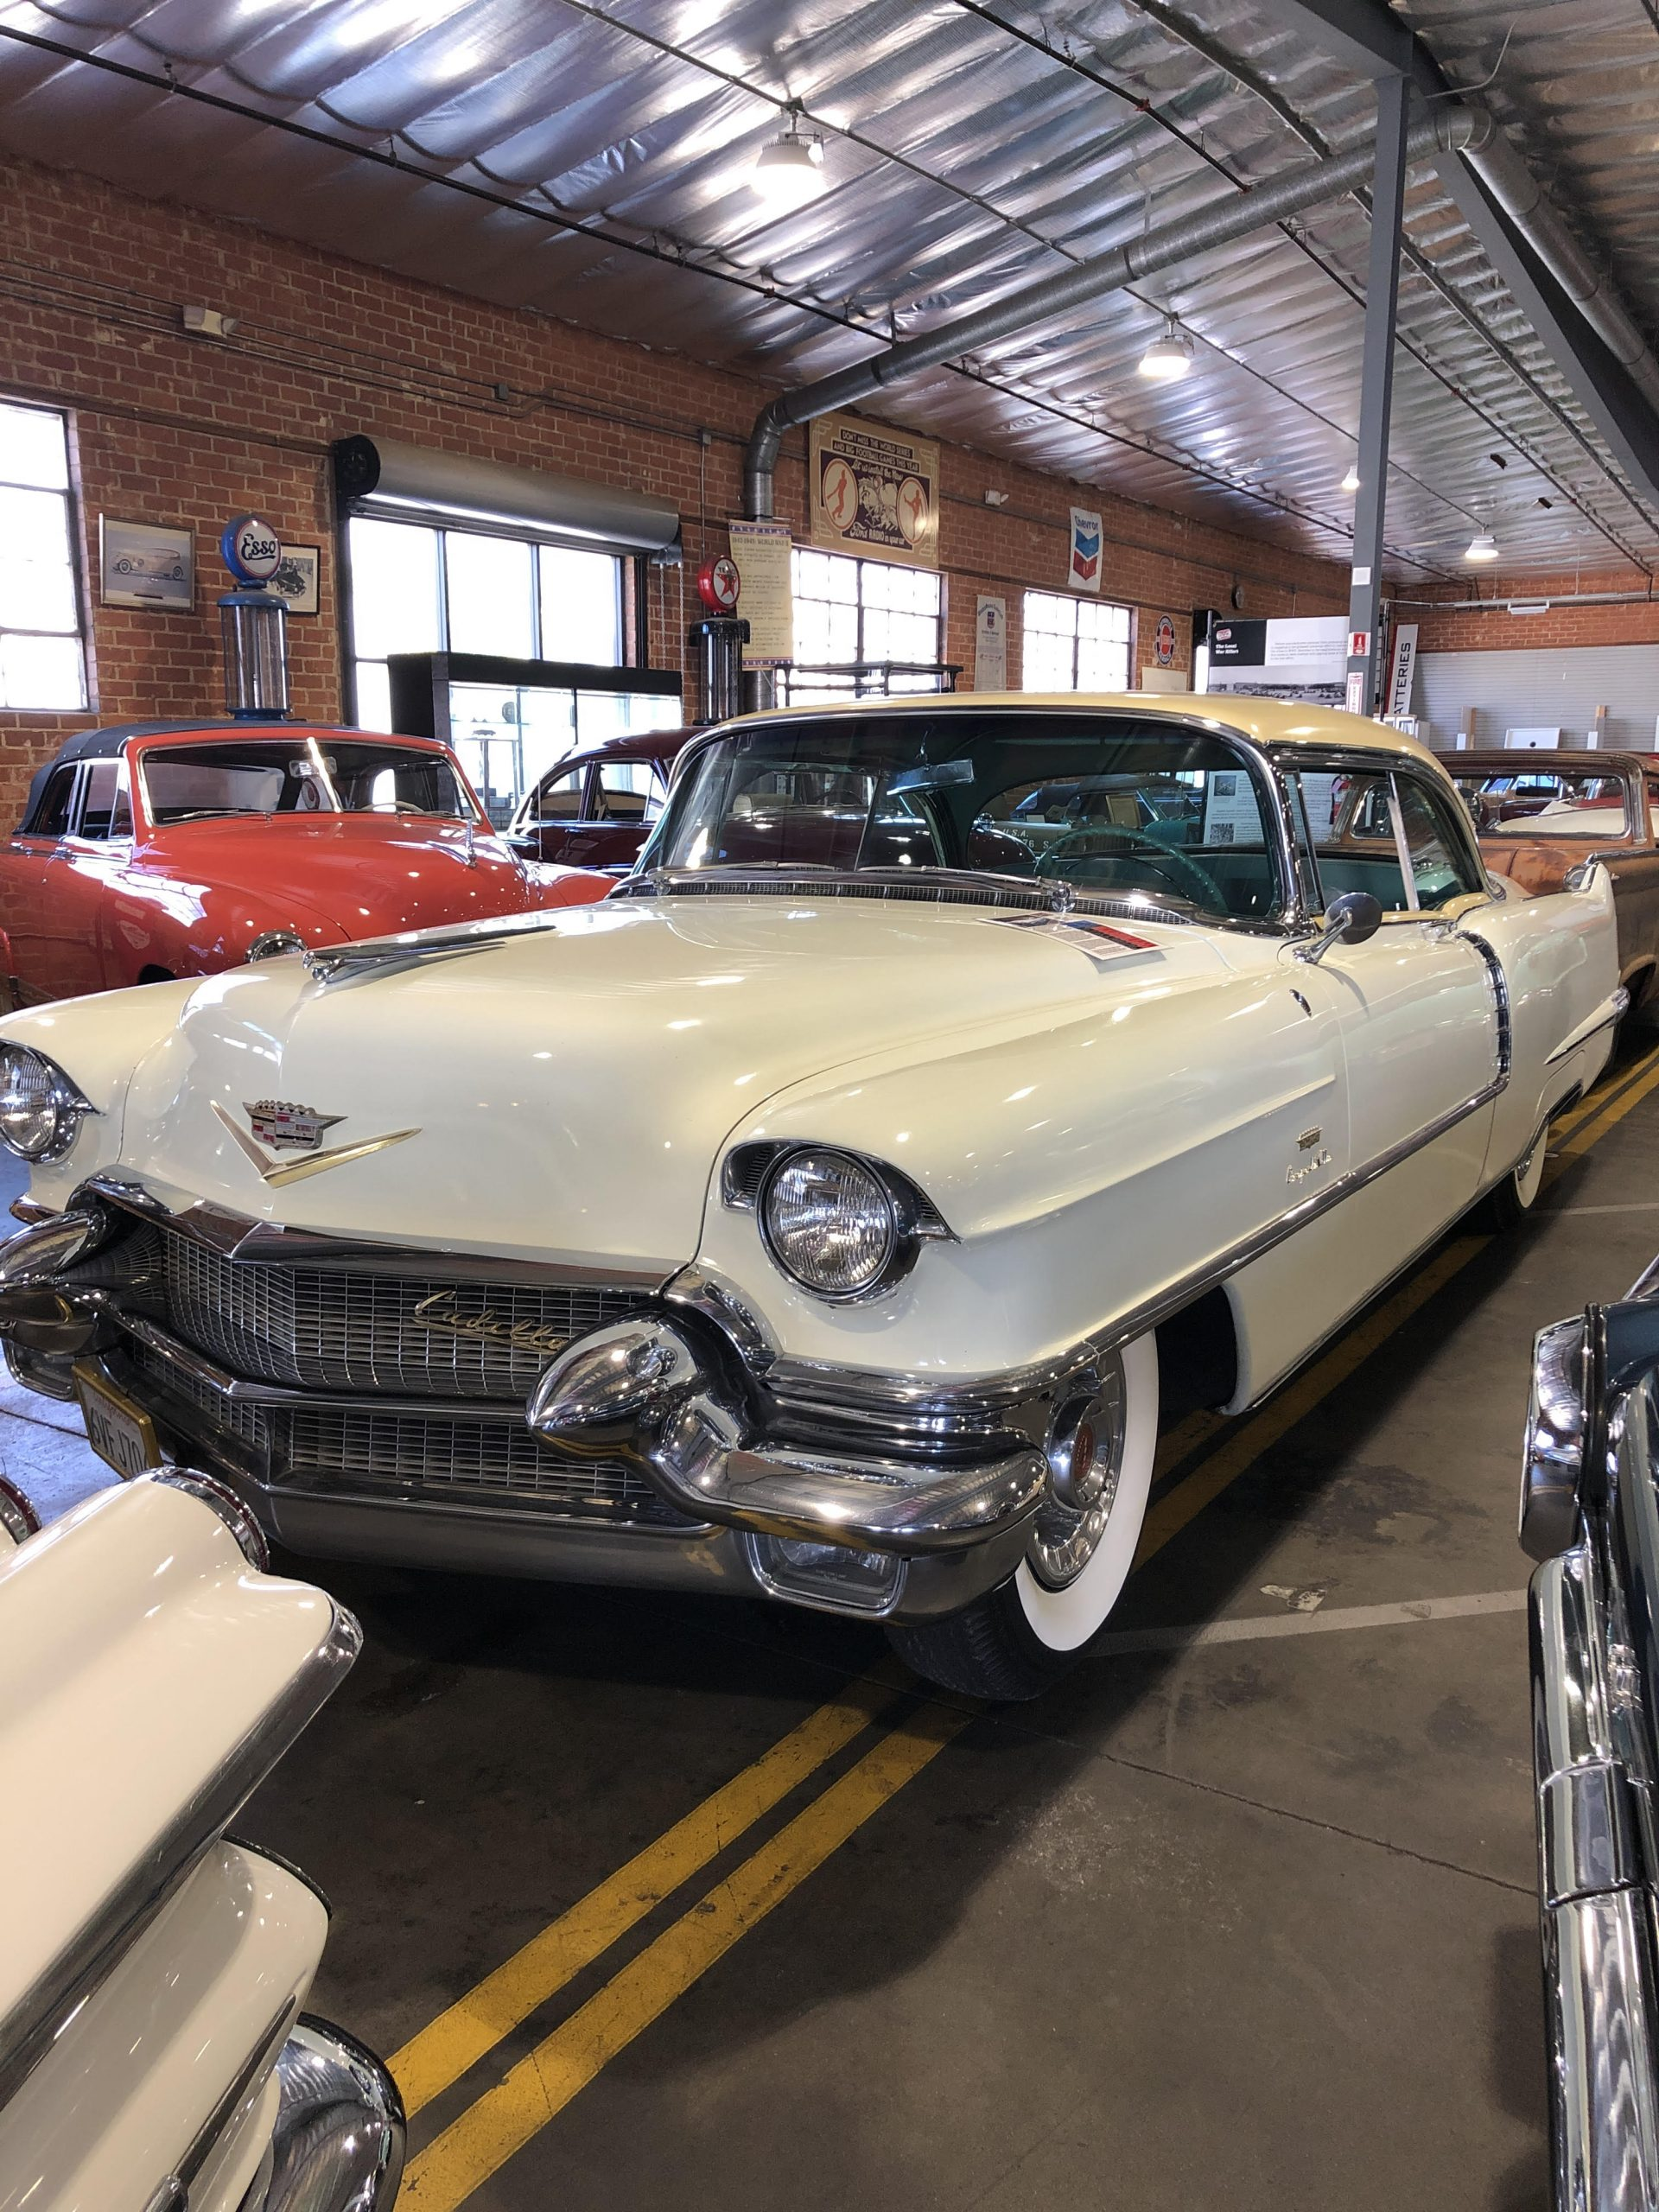 1956 Cadillac Coupe deVille for rent